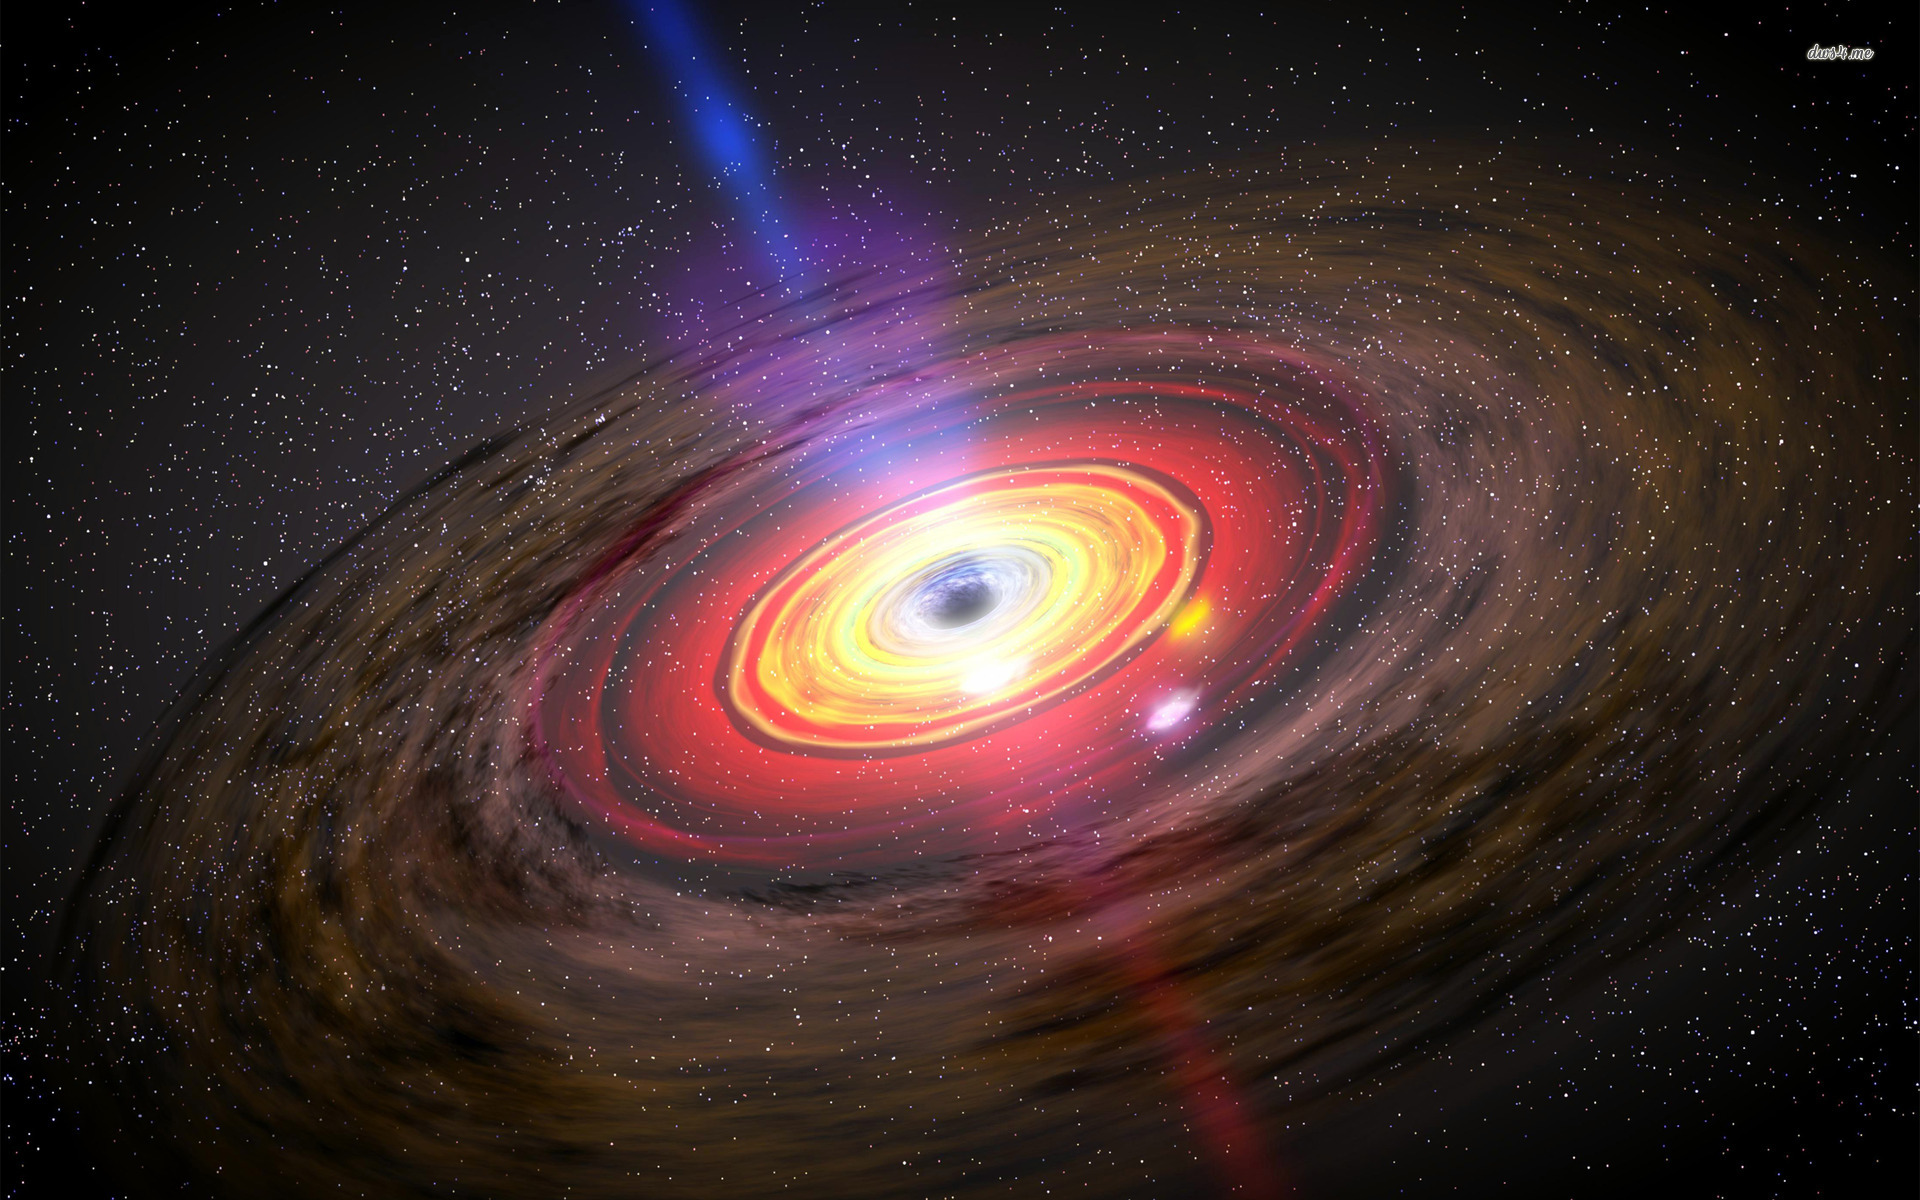 Black hole star gravity space 1920x1200 Wallpaper and Stock 1920x1200